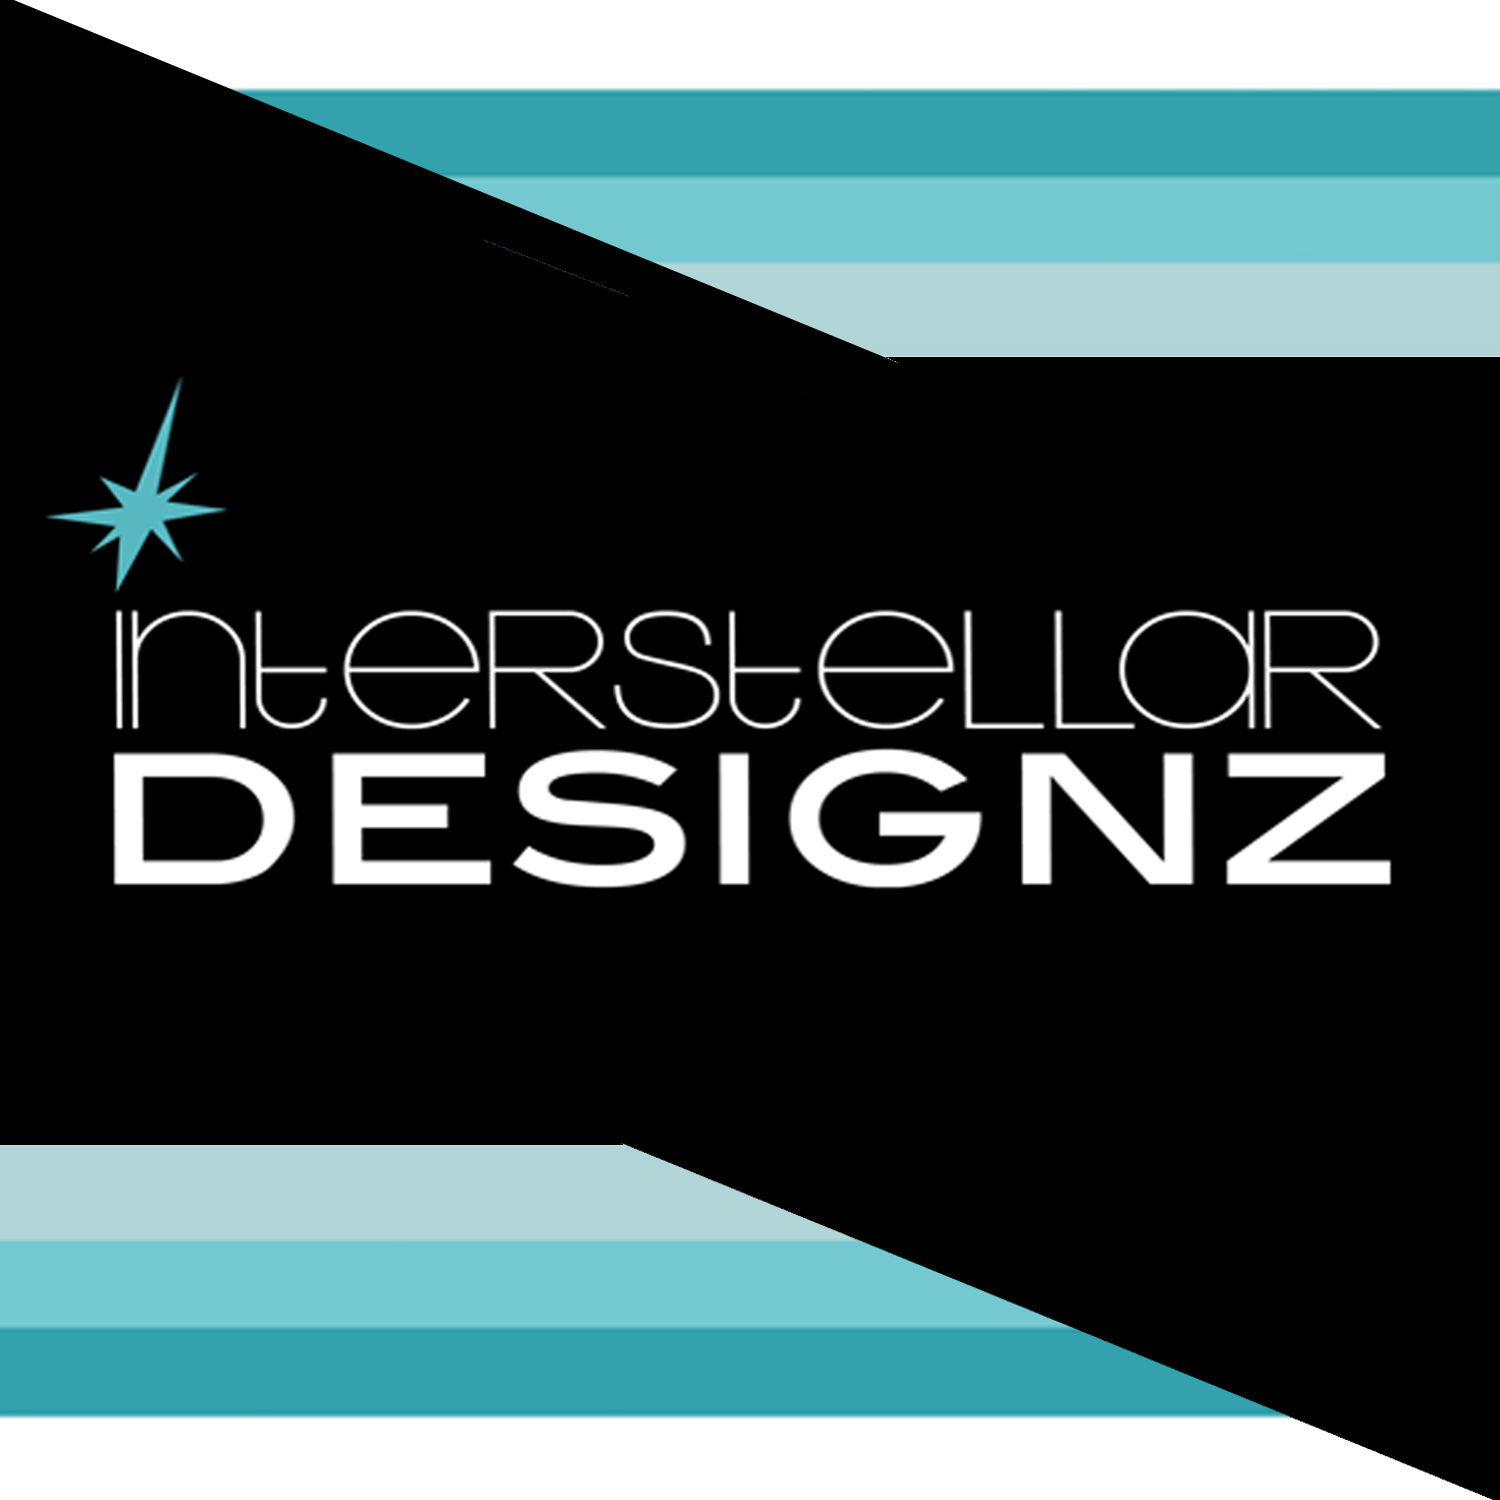 Interstellardesignz's avatar